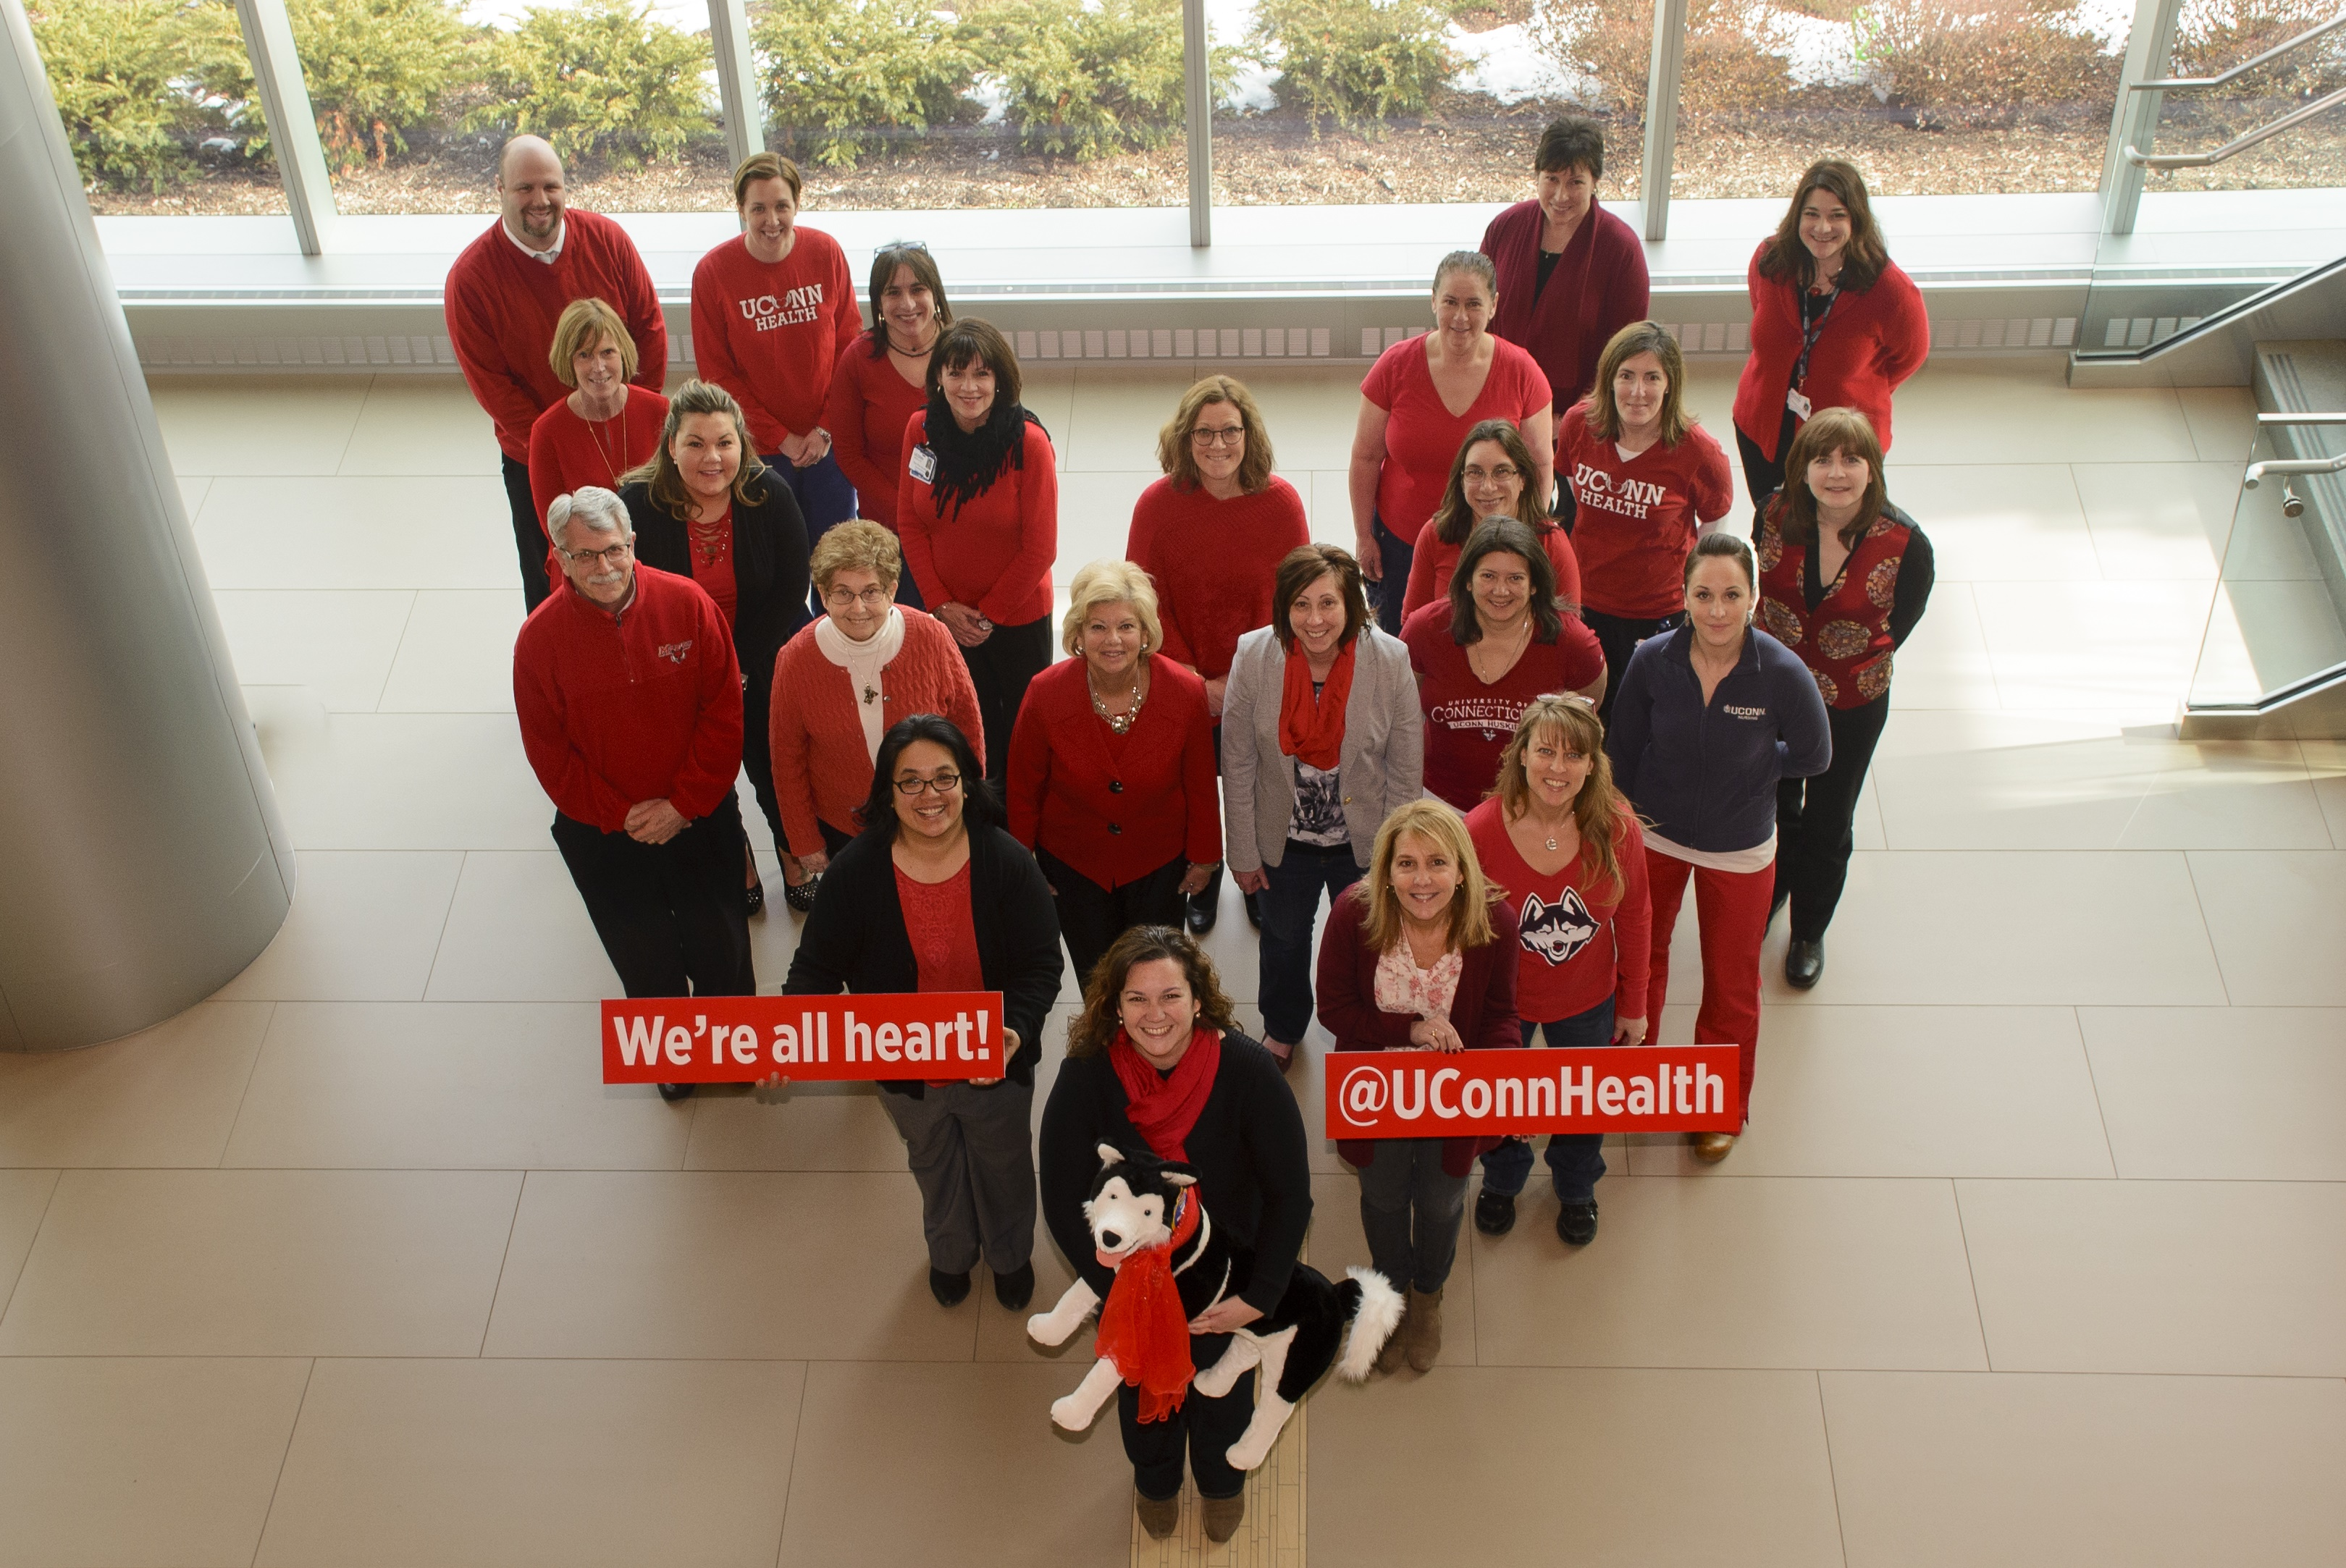 Staff gathered in the lobby of UConn John Dempsey Hospital's new tower to show how they Go Red for Women's heart disease awareness and prevention (Photo: UConn Health/Janine Gelineau).